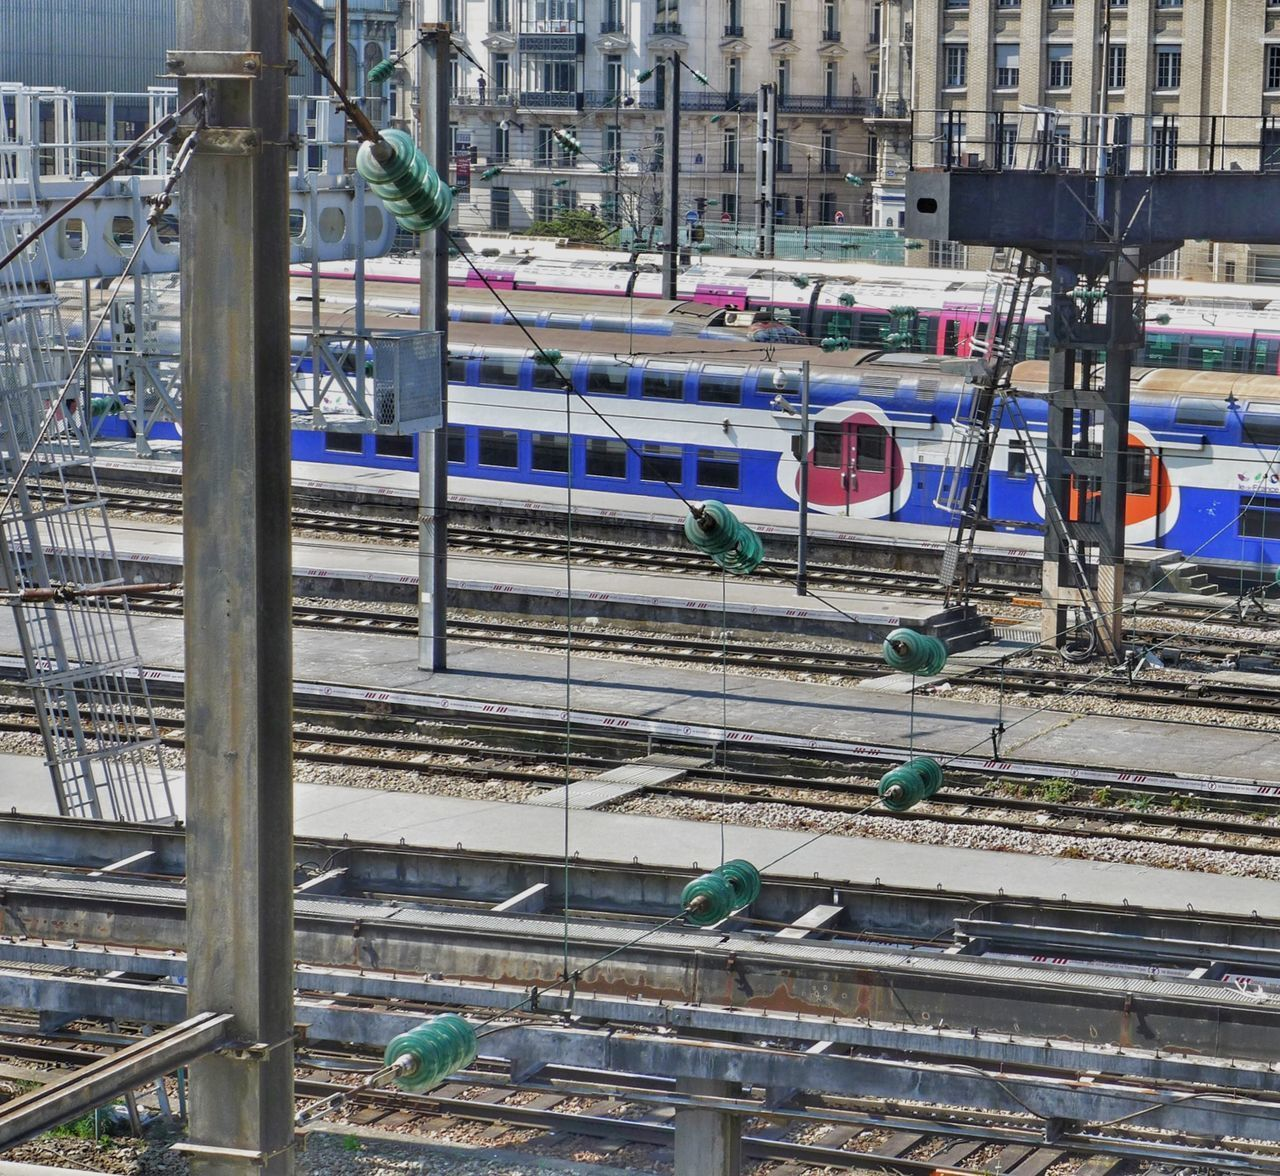 rail transportation, transportation, track, railroad track, architecture, mode of transportation, built structure, public transportation, building exterior, train, city, high angle view, day, train - vehicle, no people, land vehicle, outdoors, railroad station, connection, travel, station